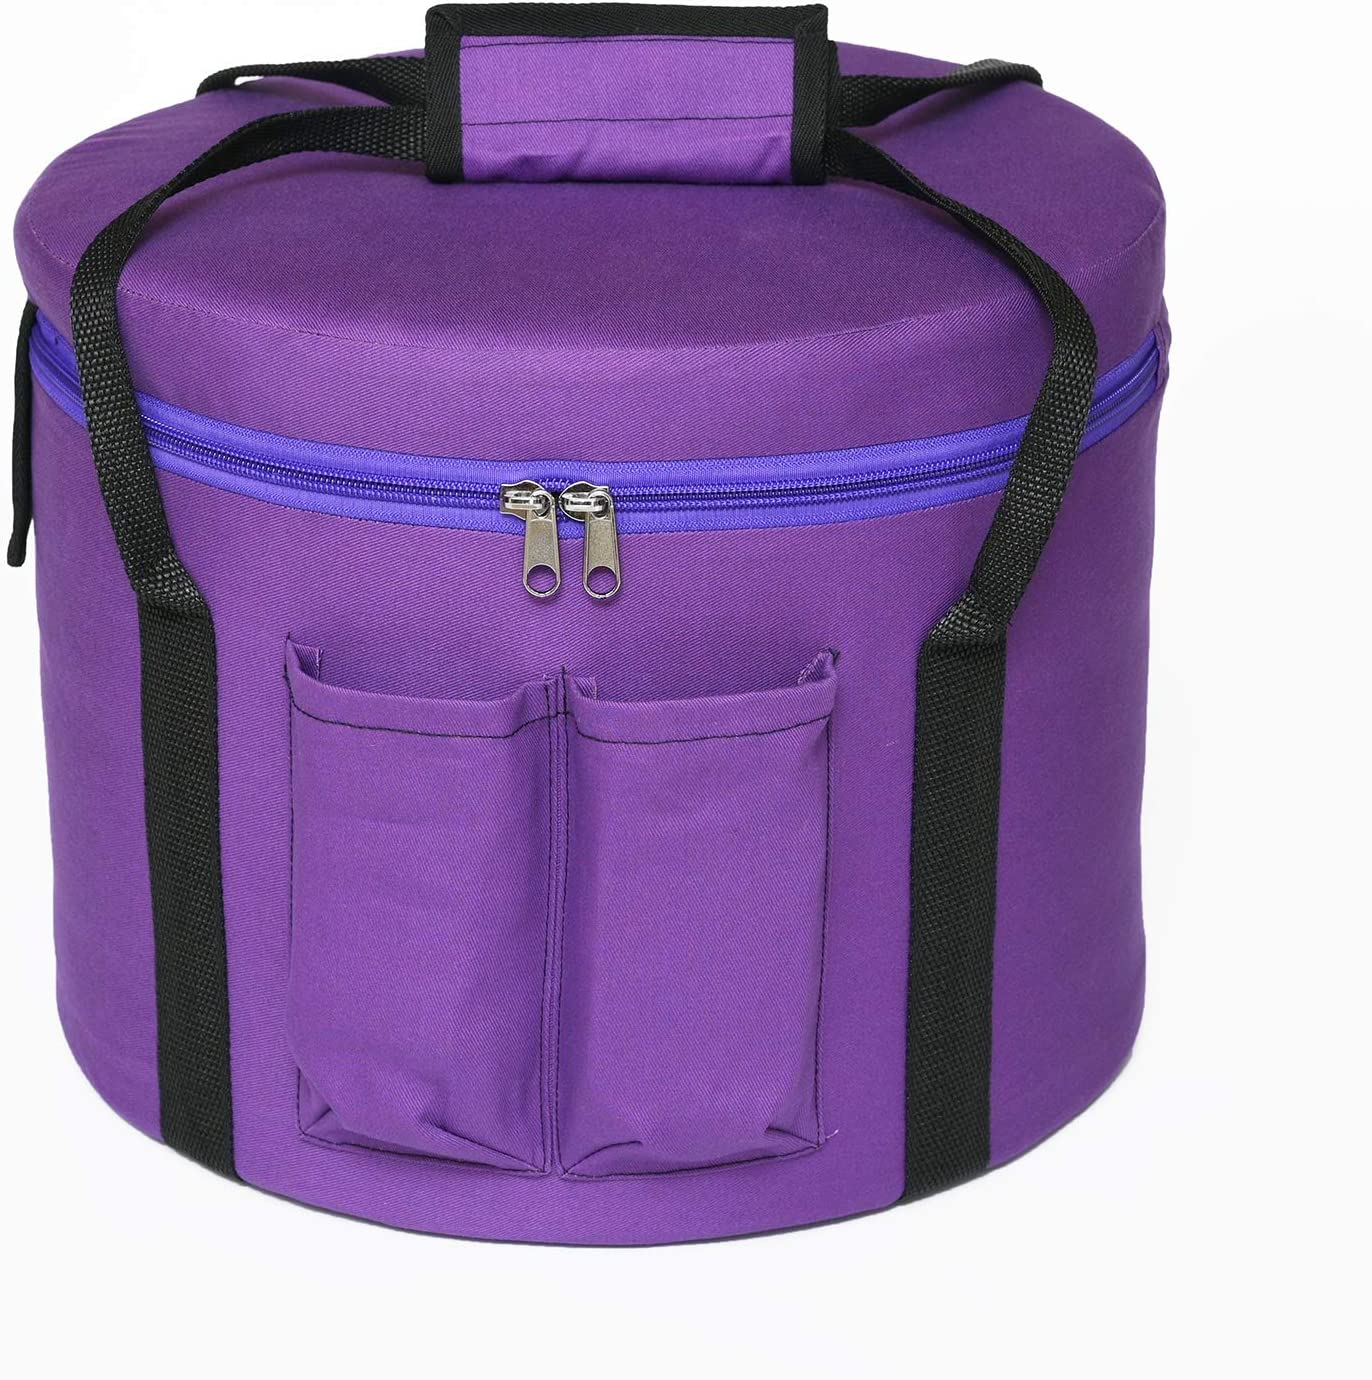 CVNC 8 Inch Purple Color Padded Carrying Case Bag For Crystal Singing Pyramid